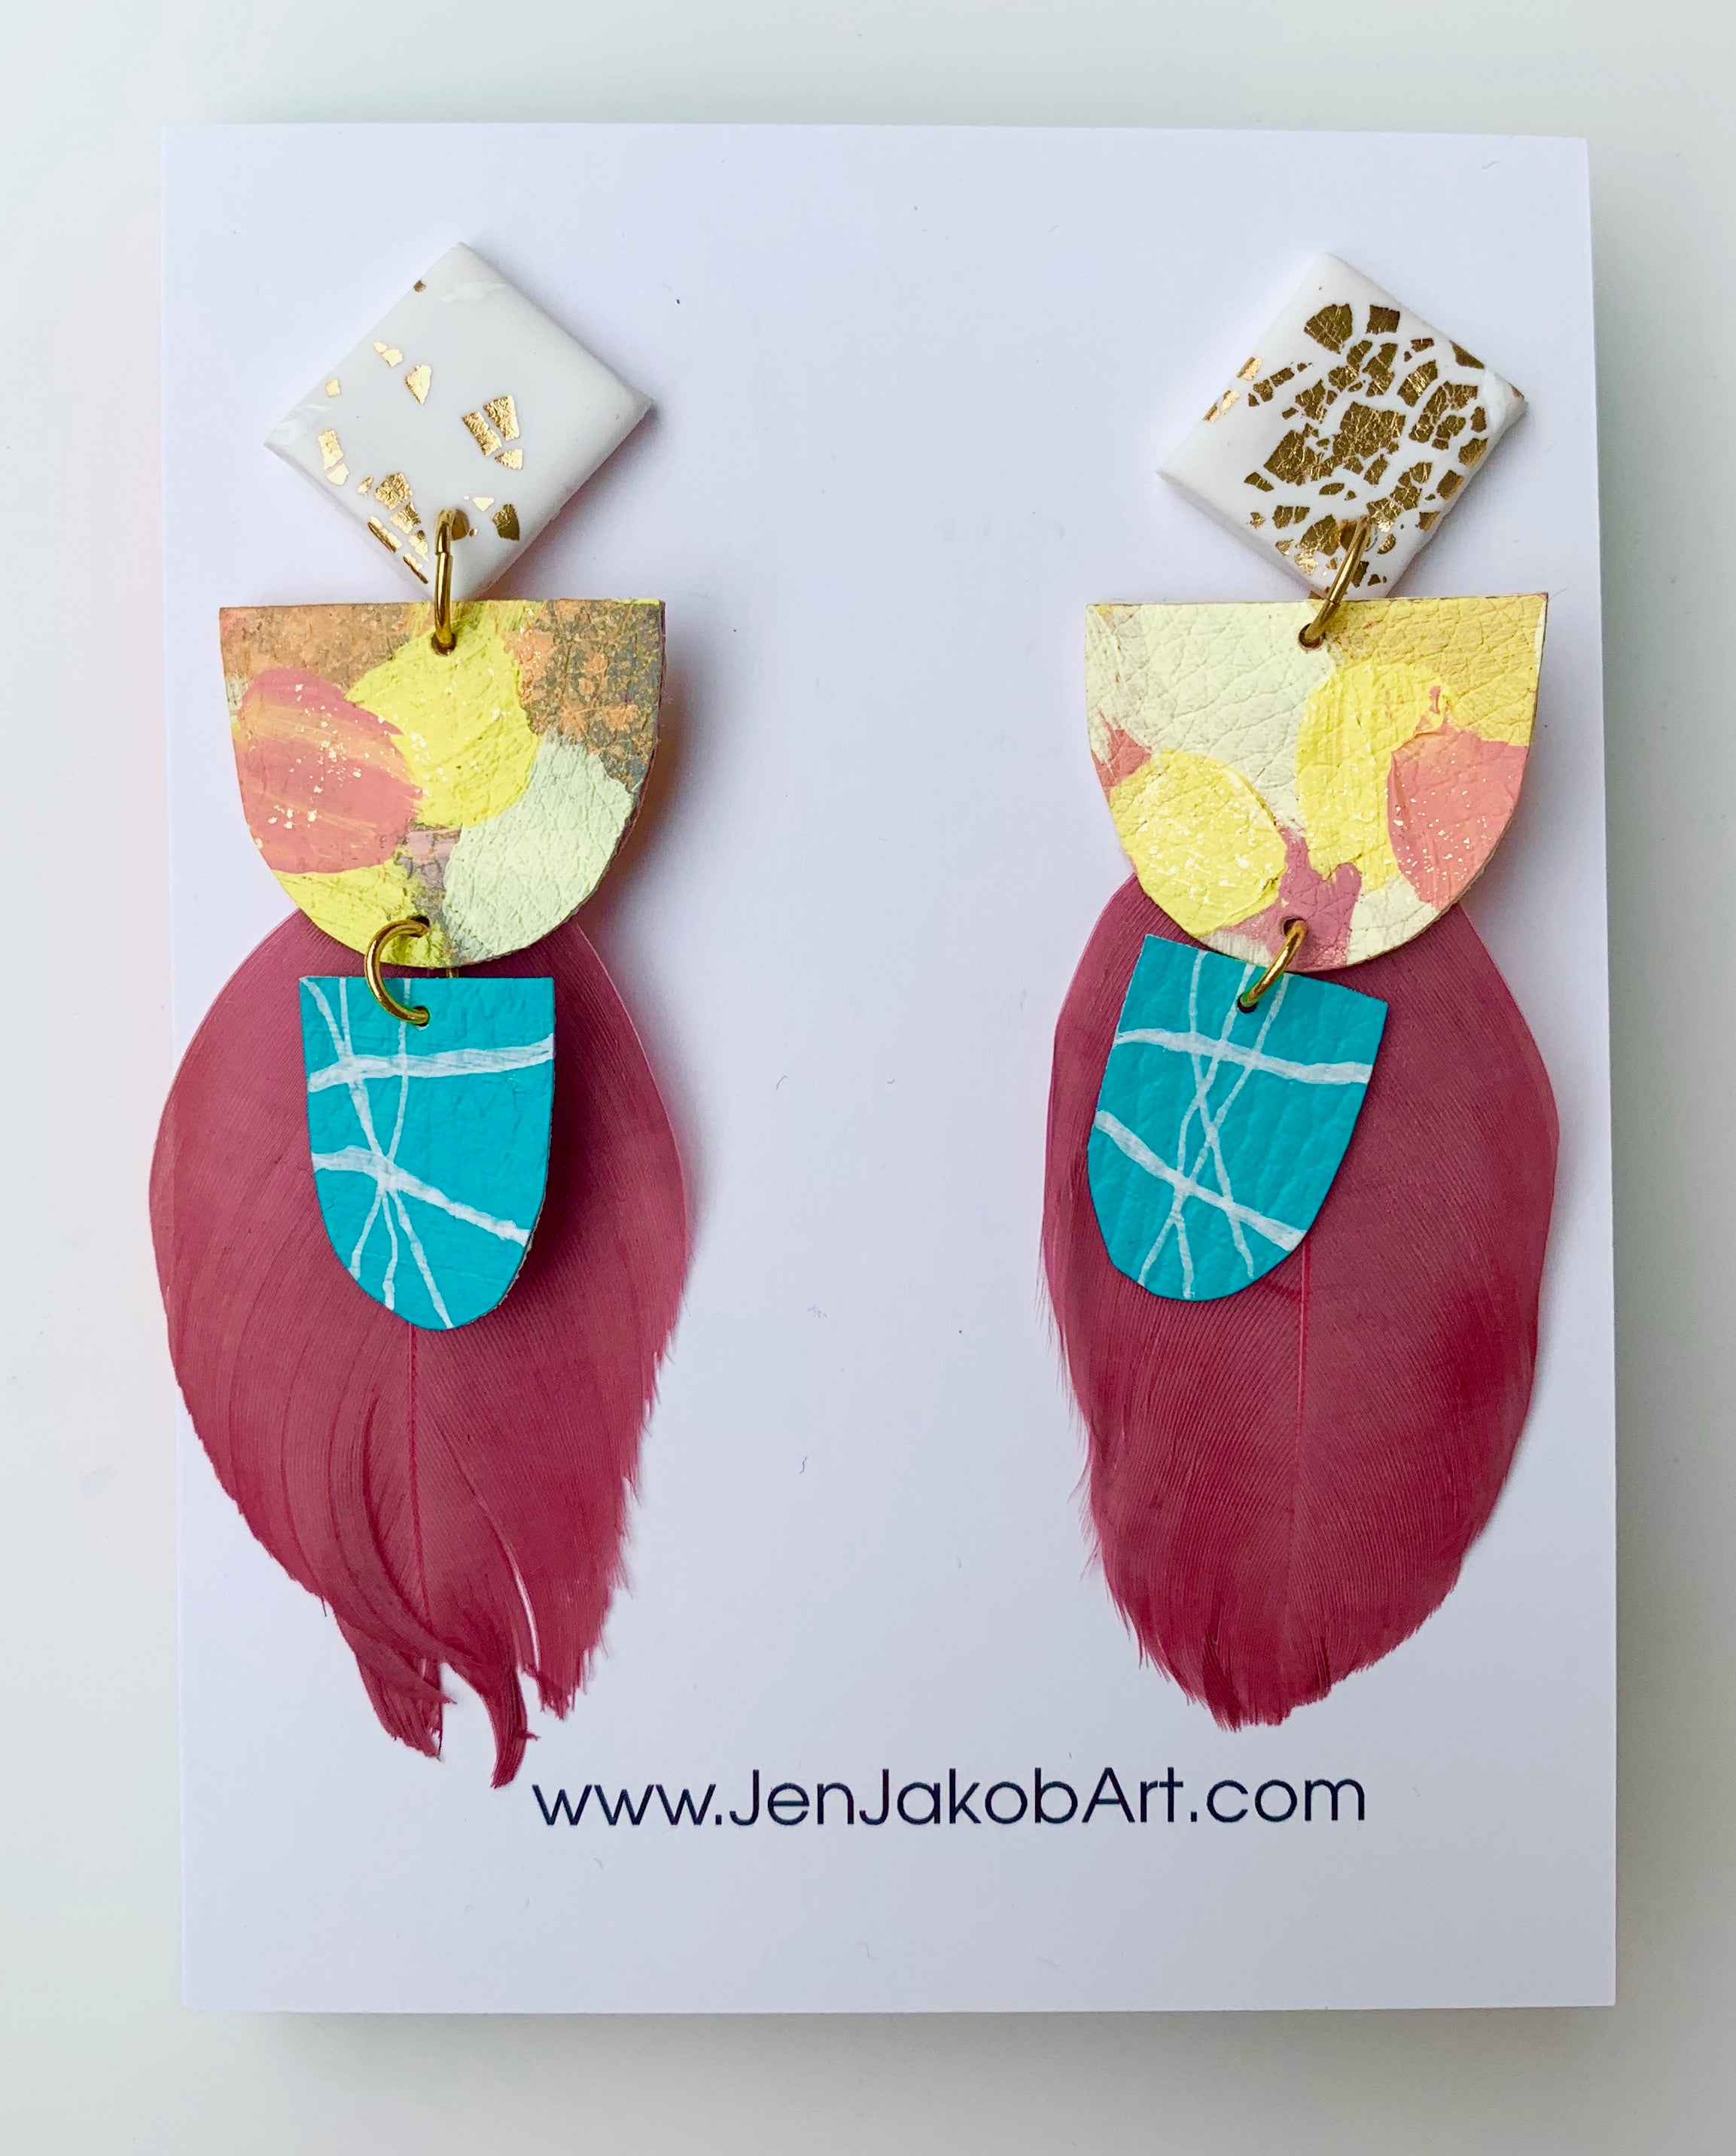 Earrings with Feathers in white, yellow, pink, teal